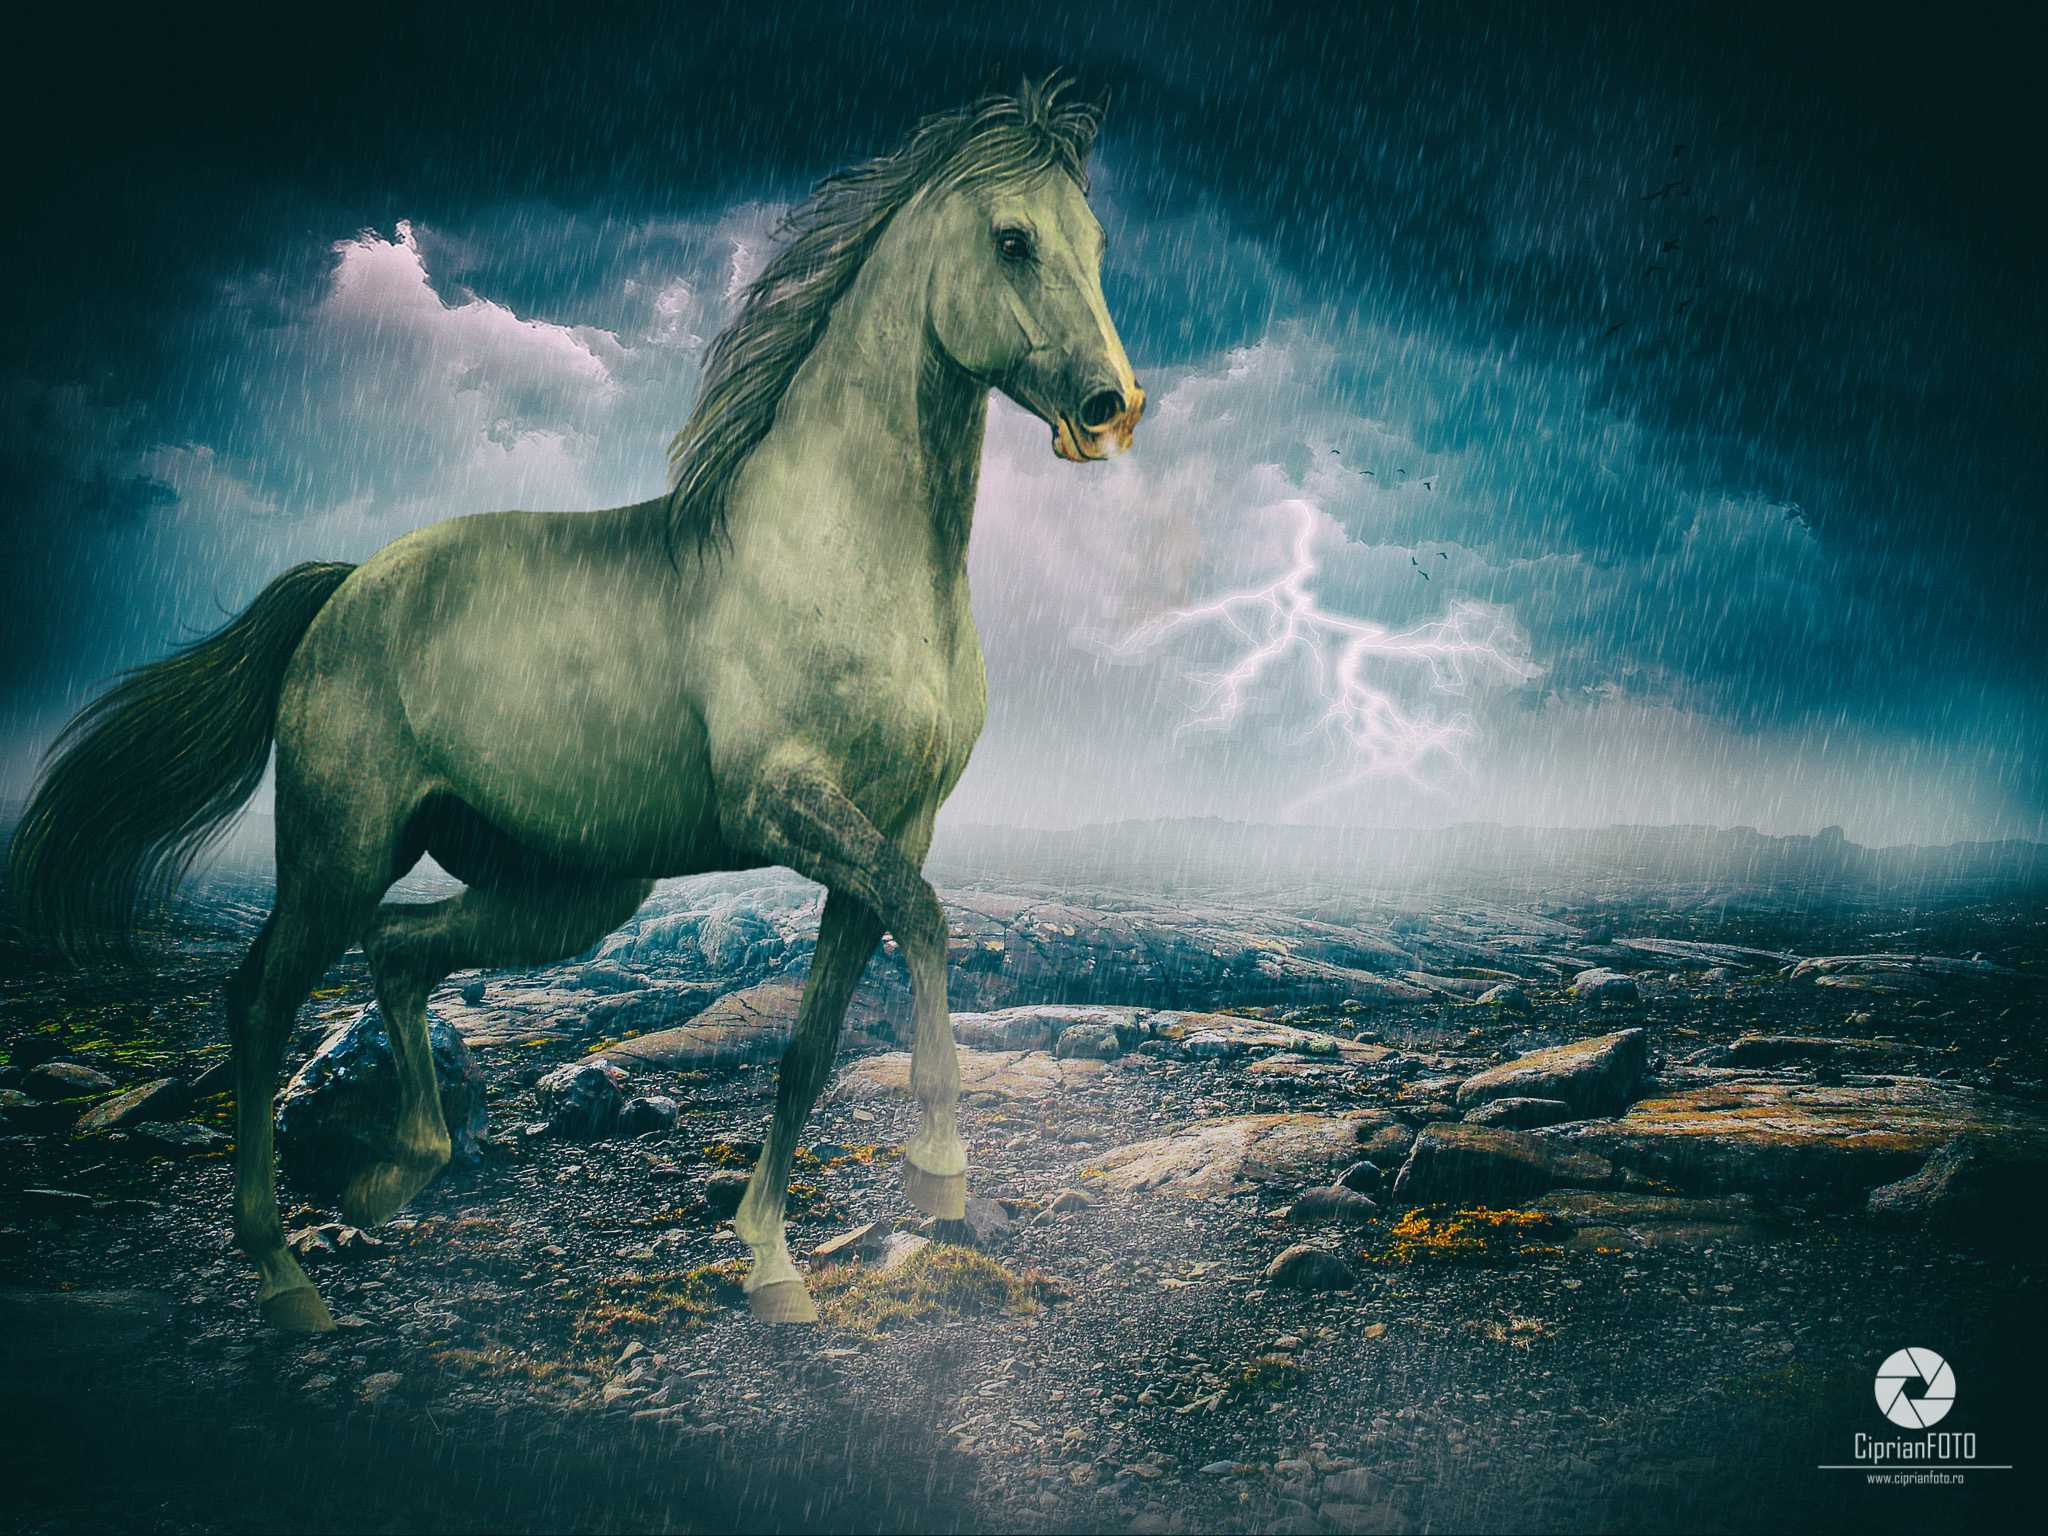 The Horse, Photoshop Manipulation Tutorial, CiprianFOTO